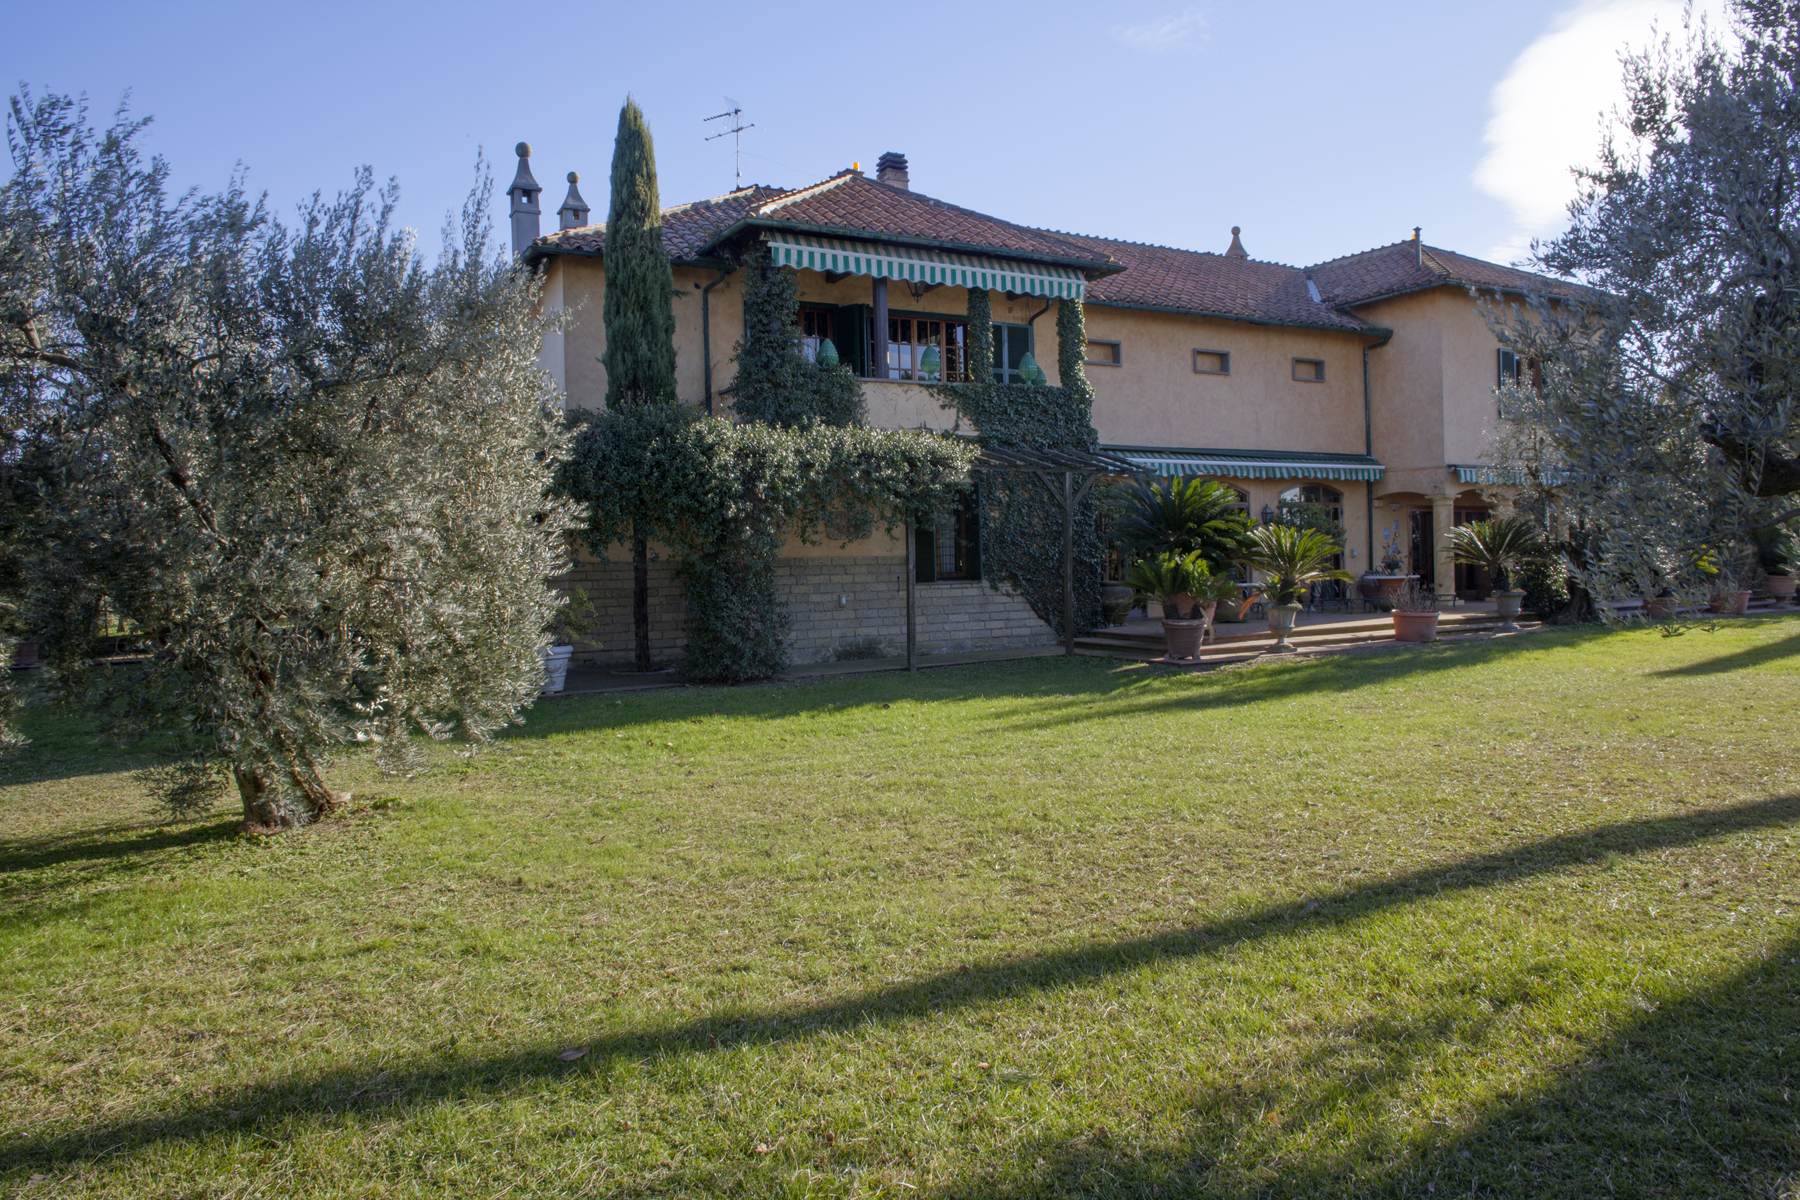 Additional photo for property listing at Magnificent Villa in the Castelli Romani with pool Via Giovanni Pascoli Marino, Rome 00047 Italy